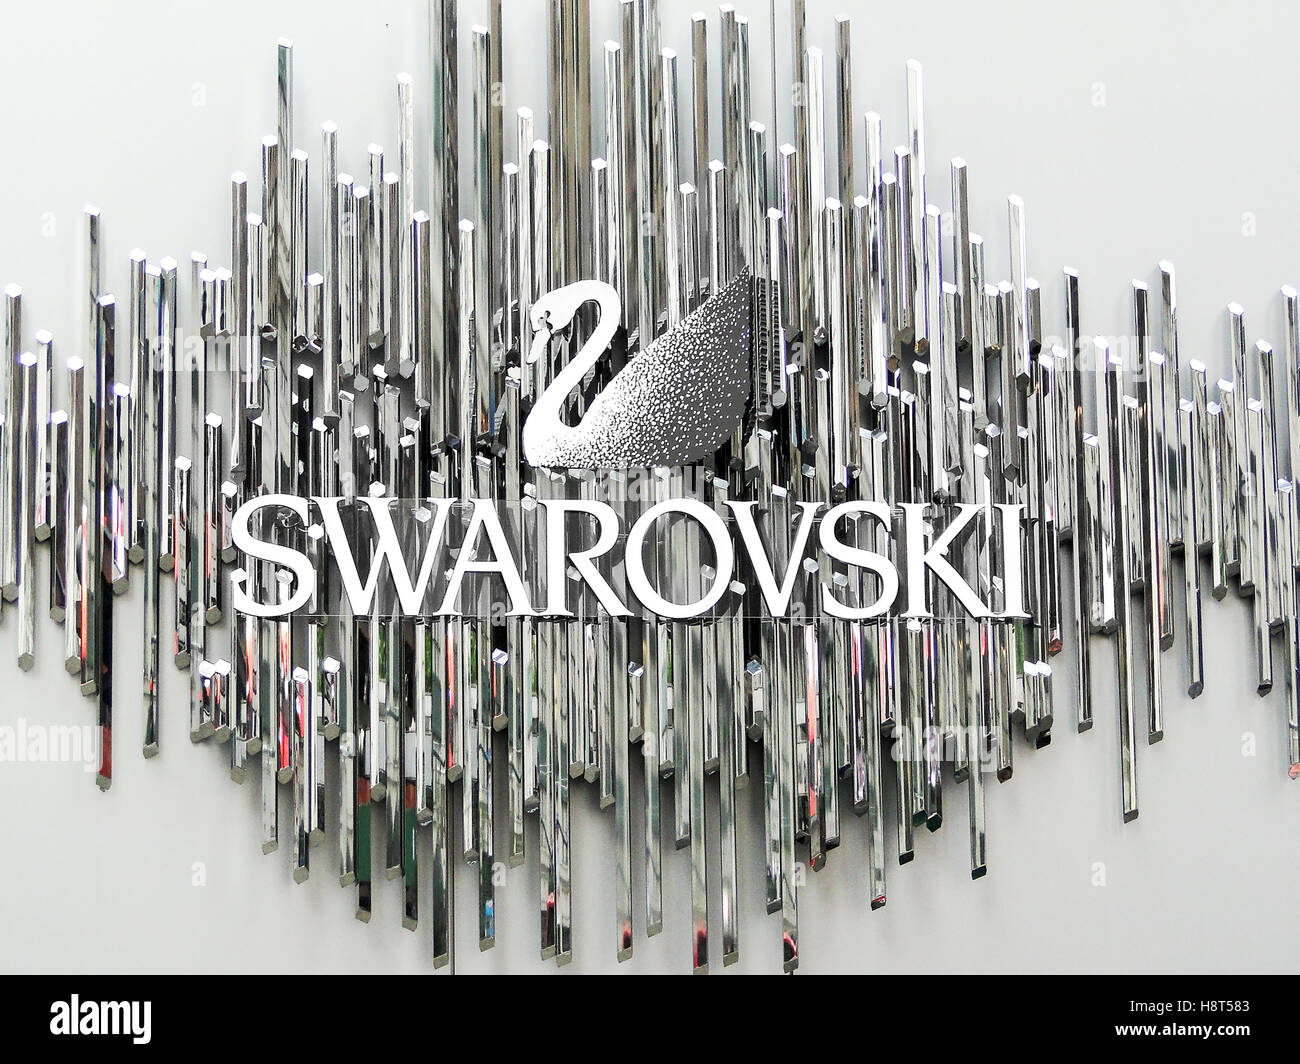 8adc56bbbbc6 The Swarovski swan symbol and logo on a wall Stock Photo  125920819 ...